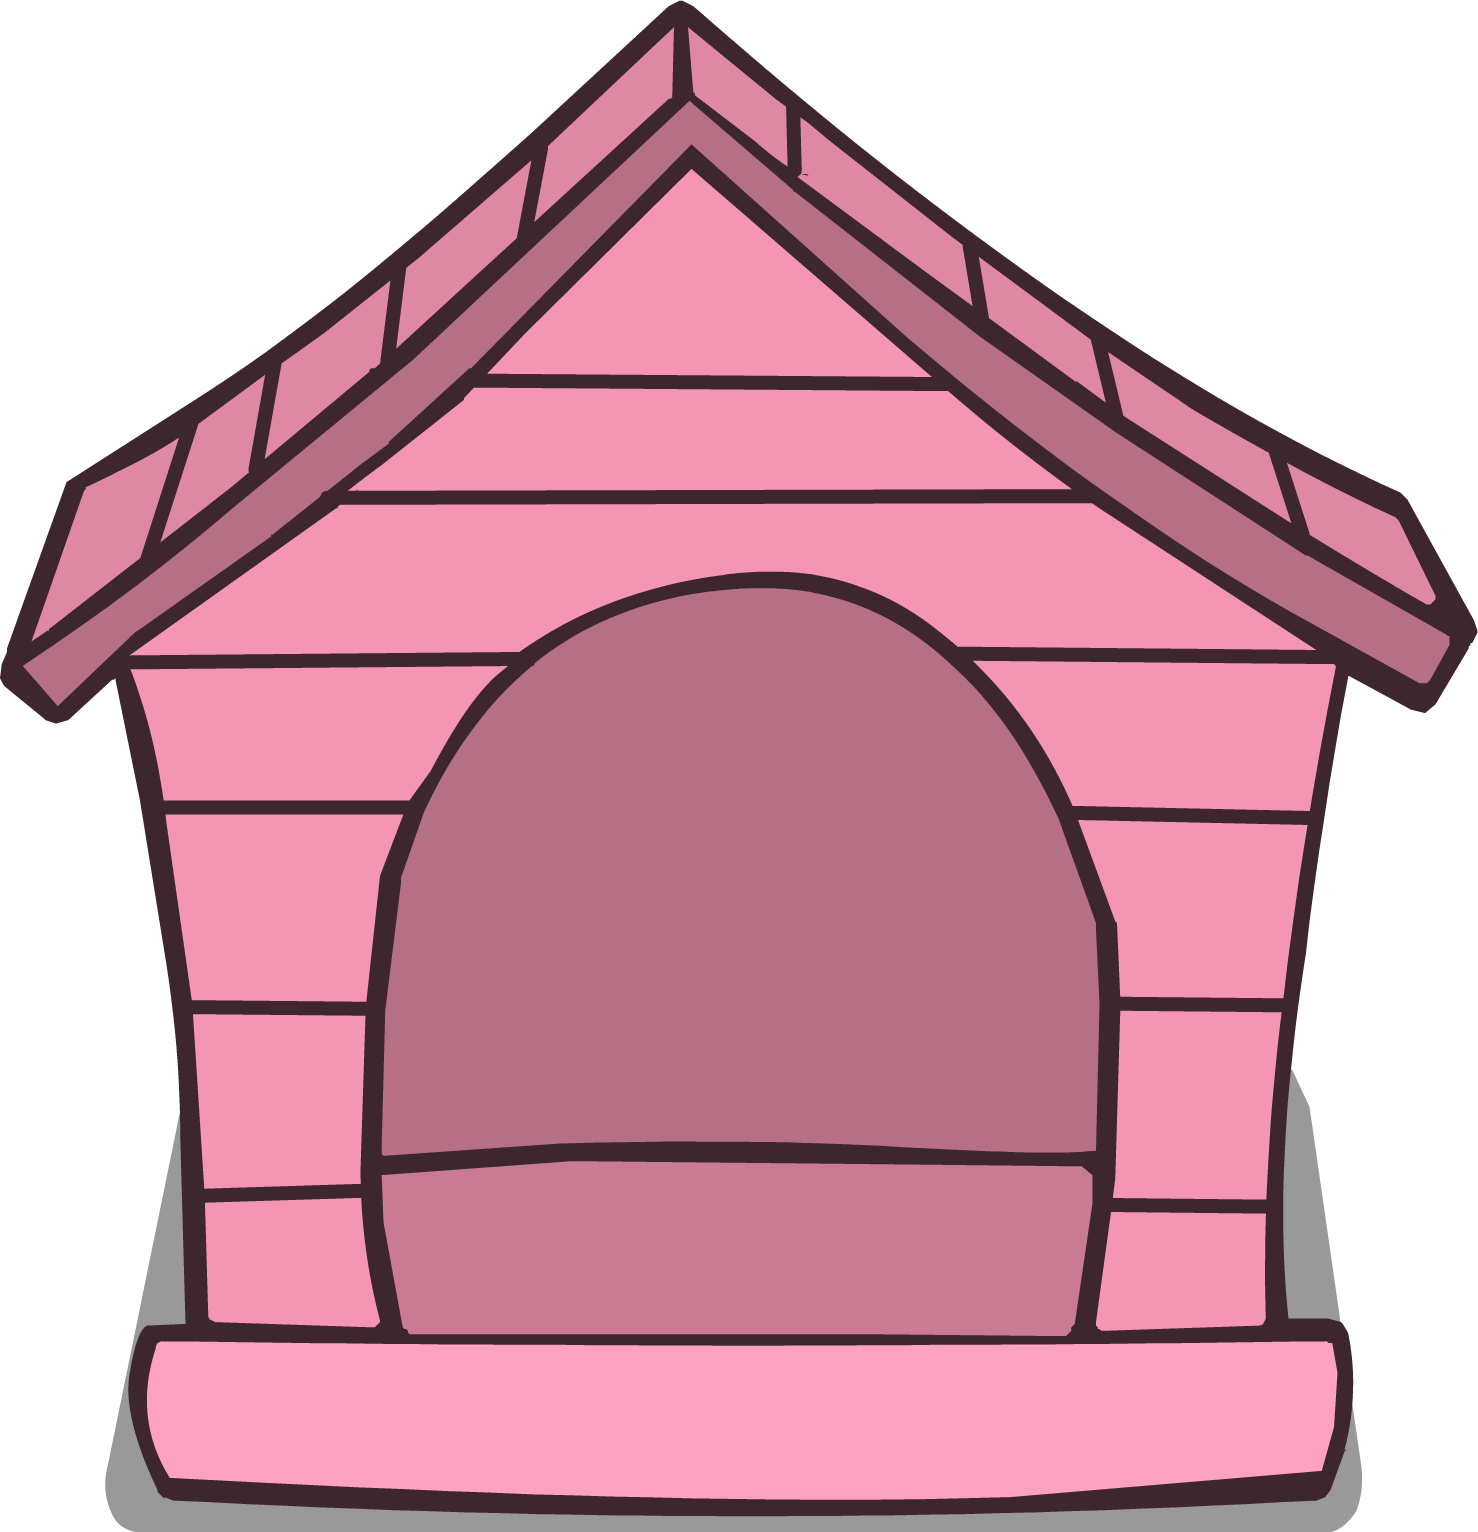 Pink house png. Image club penguin rewritten